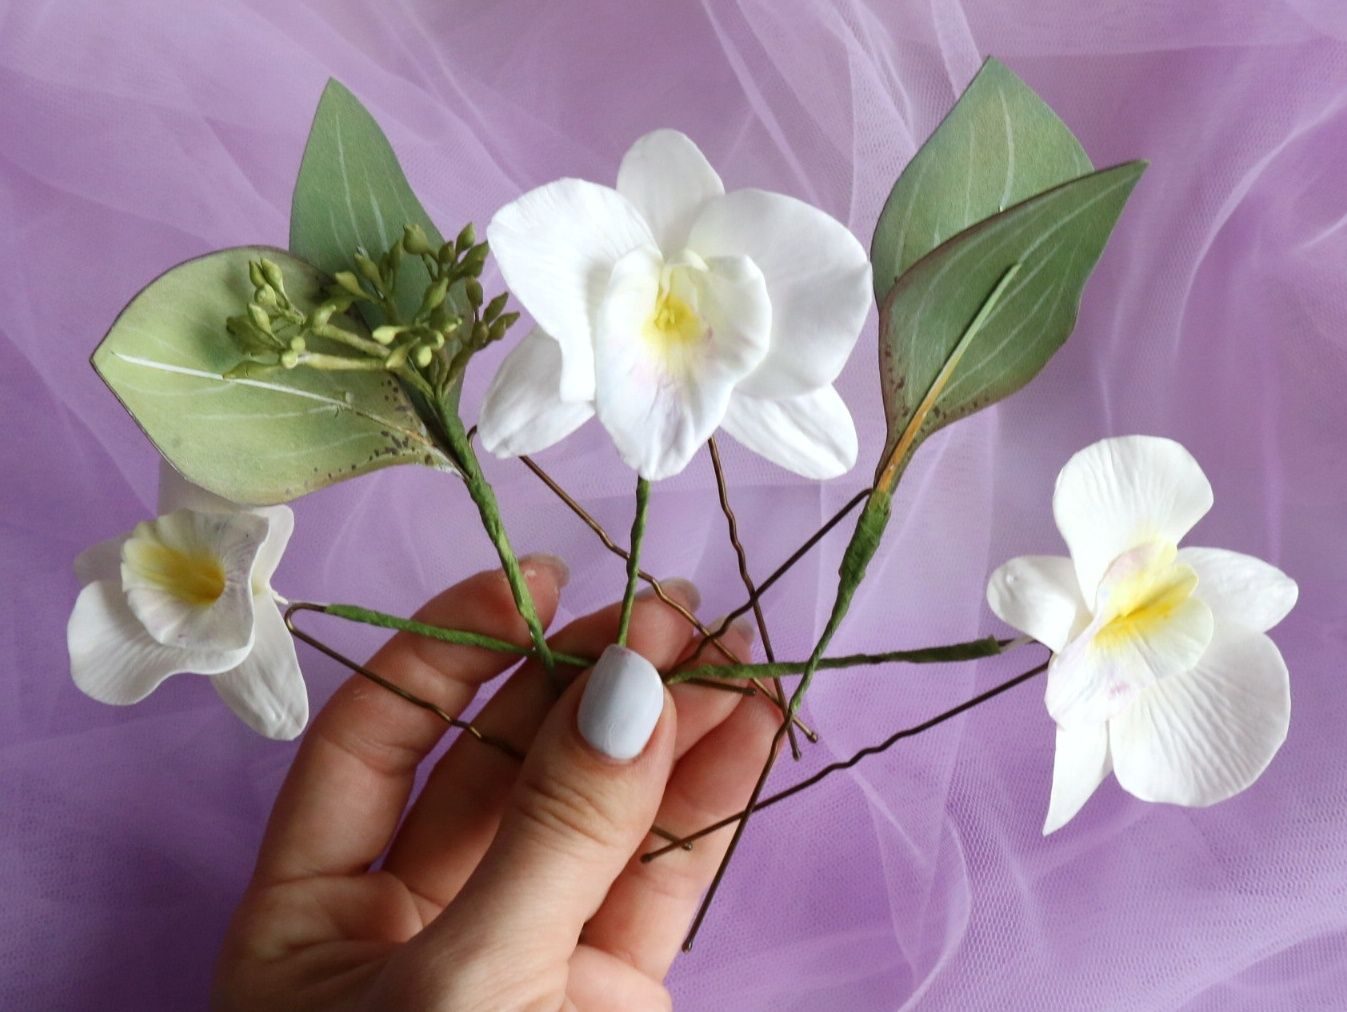 Tropical Flower Orchid Eucaliptus Bridal Hair Piece For Beach Or Hawaiian Wedding Set Of 5 White Floral Hair Pins In 2020 Orchid Flower Floral Hair Pins White Dendrobium Orchids